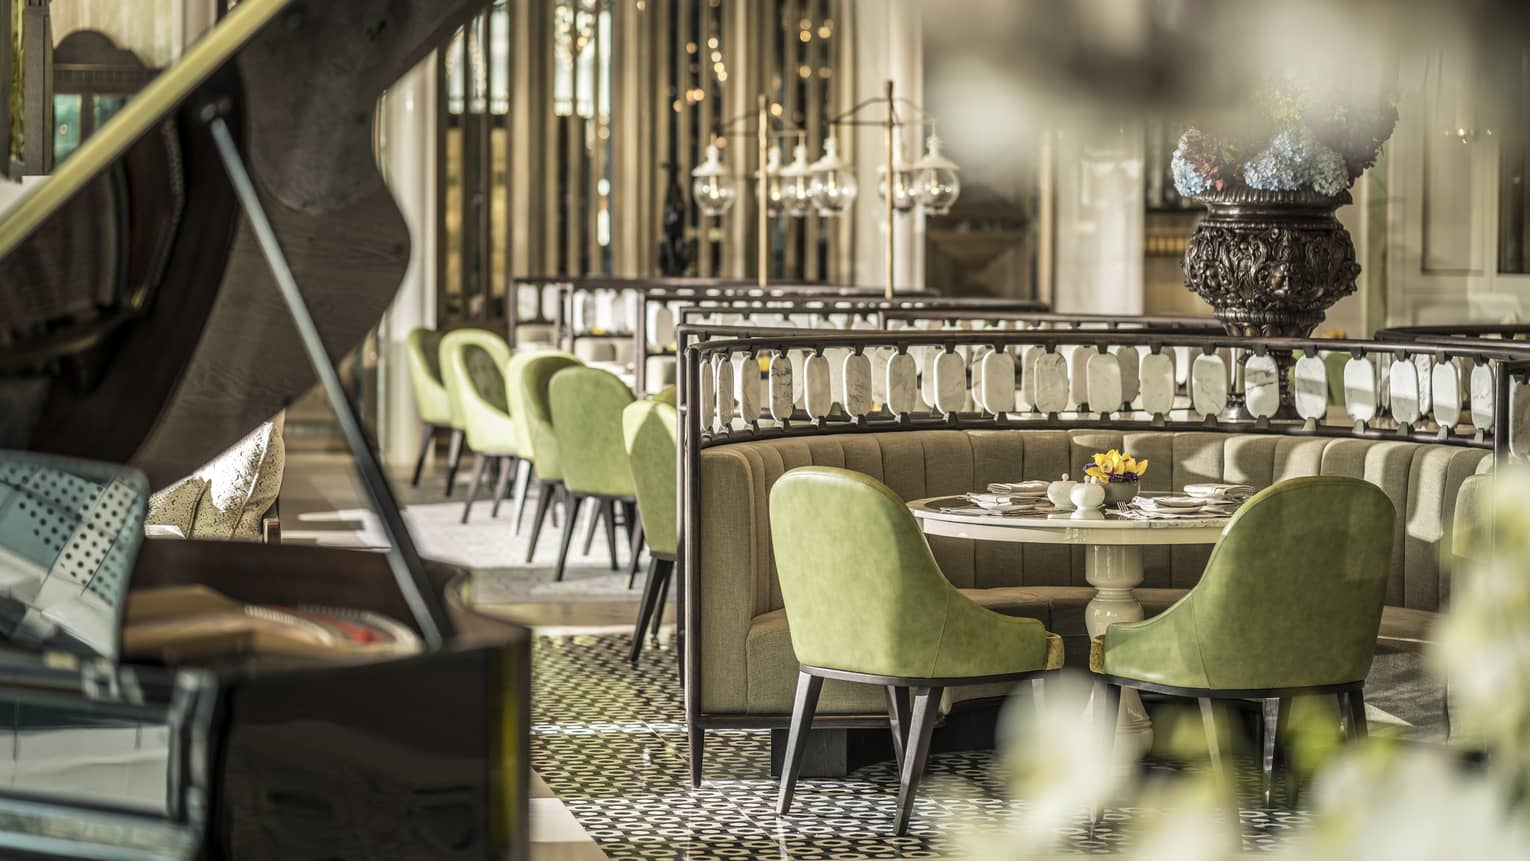 The Lobby Lounge piano and a table set for two